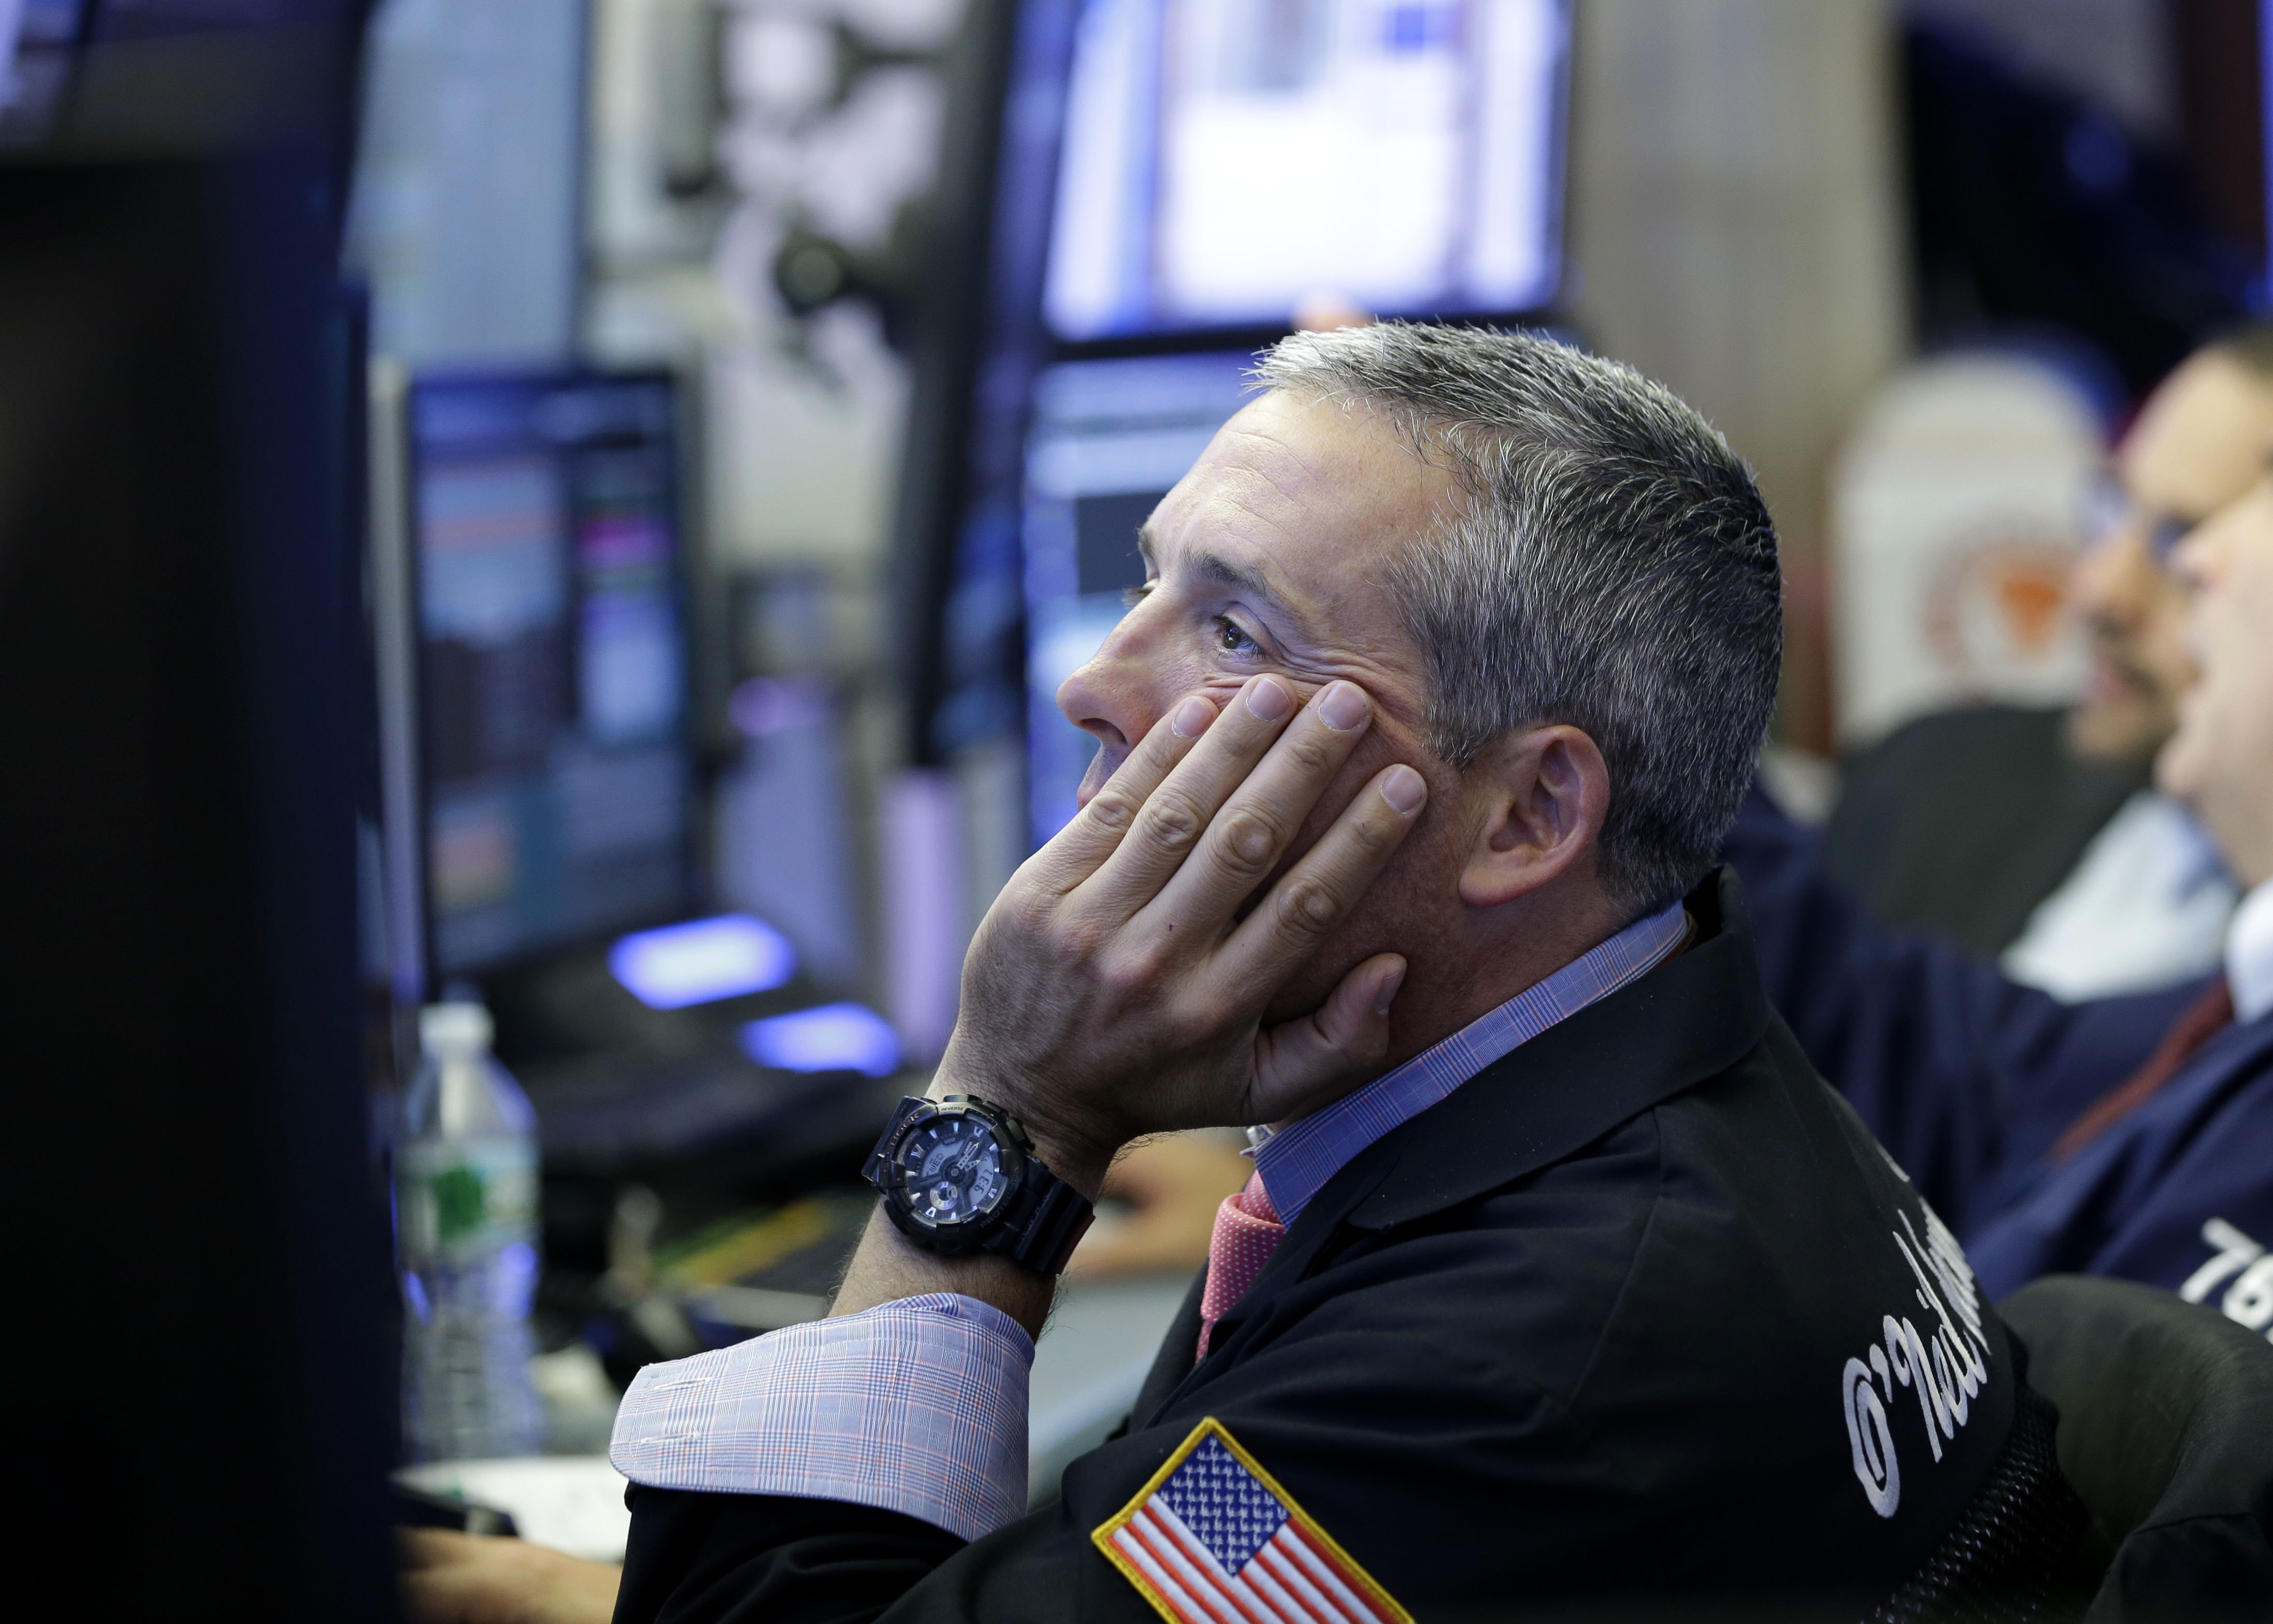 A trader on the floor at the New York Stock Exchange in New York City on July 8, 2015.